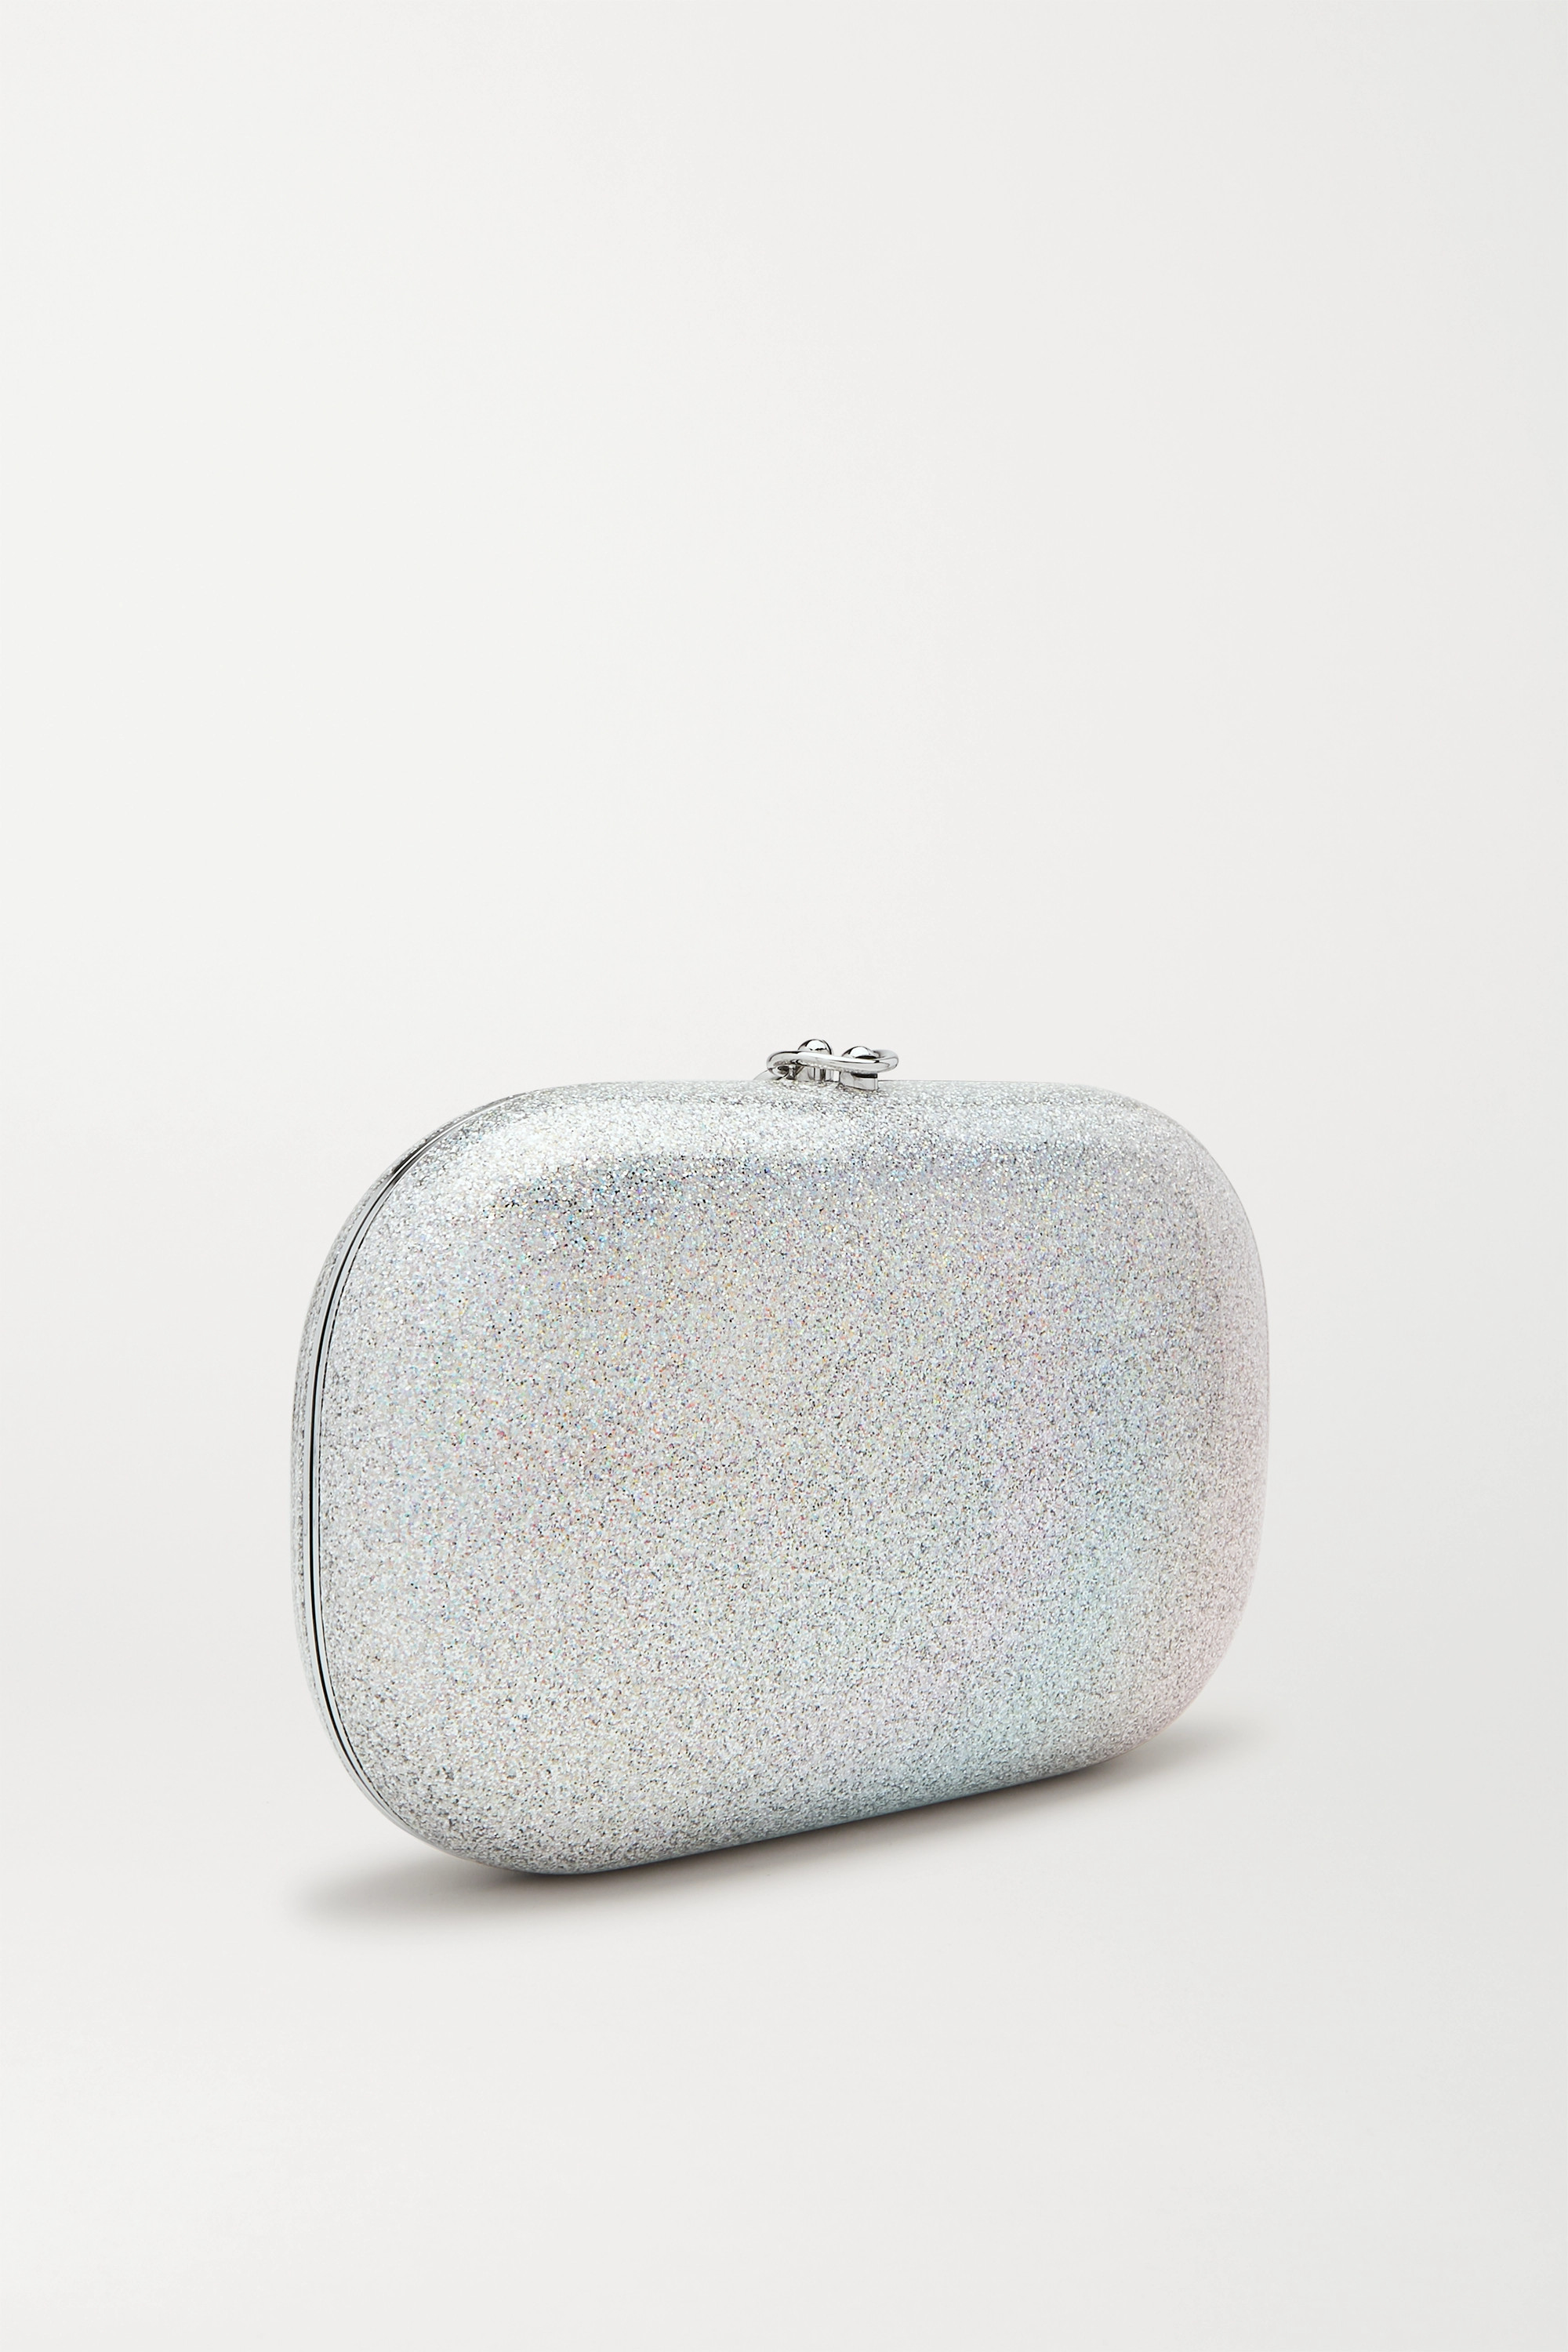 Jeffrey Levinson Elina PLUS glittered rainbow enamel clutch